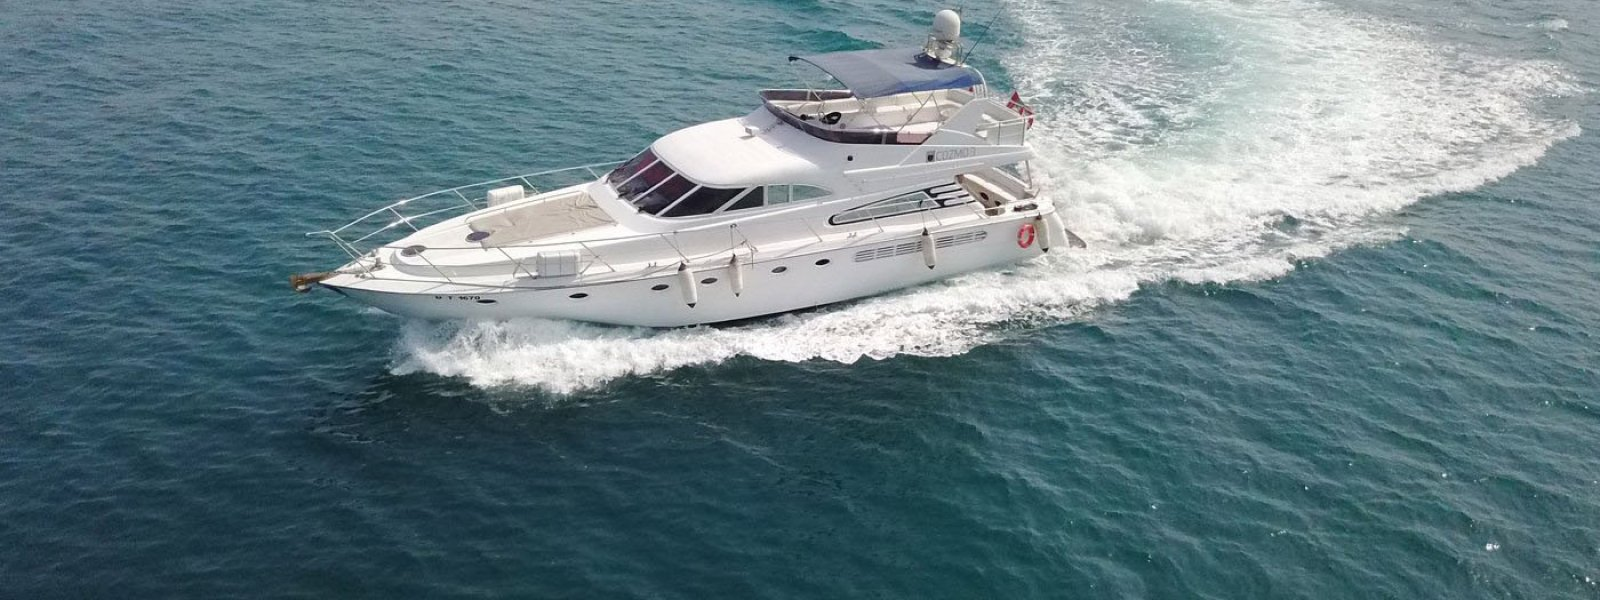 Luxury Yacht in Dubai - For Premium Yacht Rental Experience